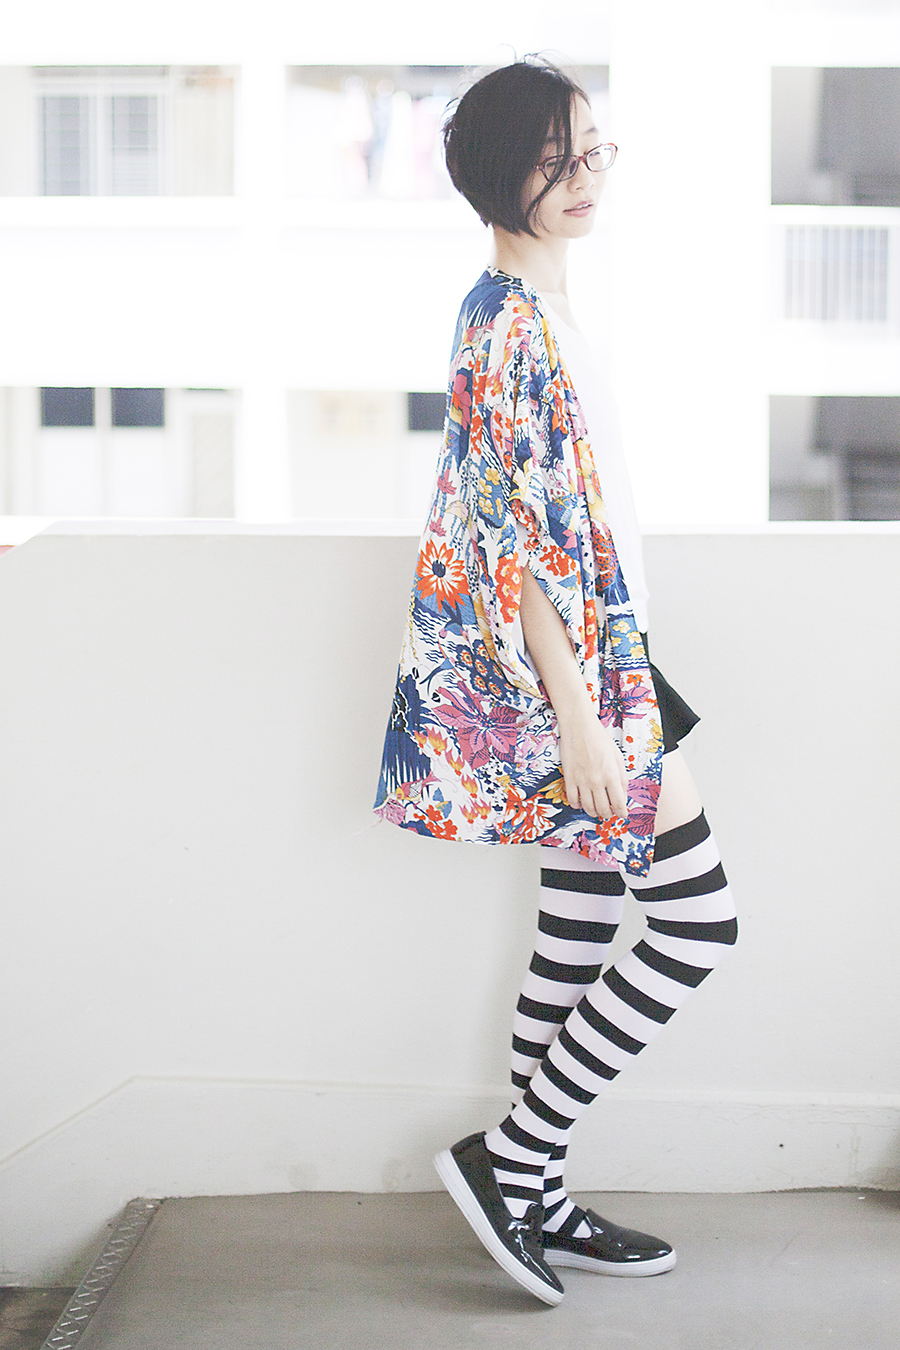 Dresslink floral kimono, We Love Colors black & white striped thigh high socks, Zalora shoes, Firmoo glasses.